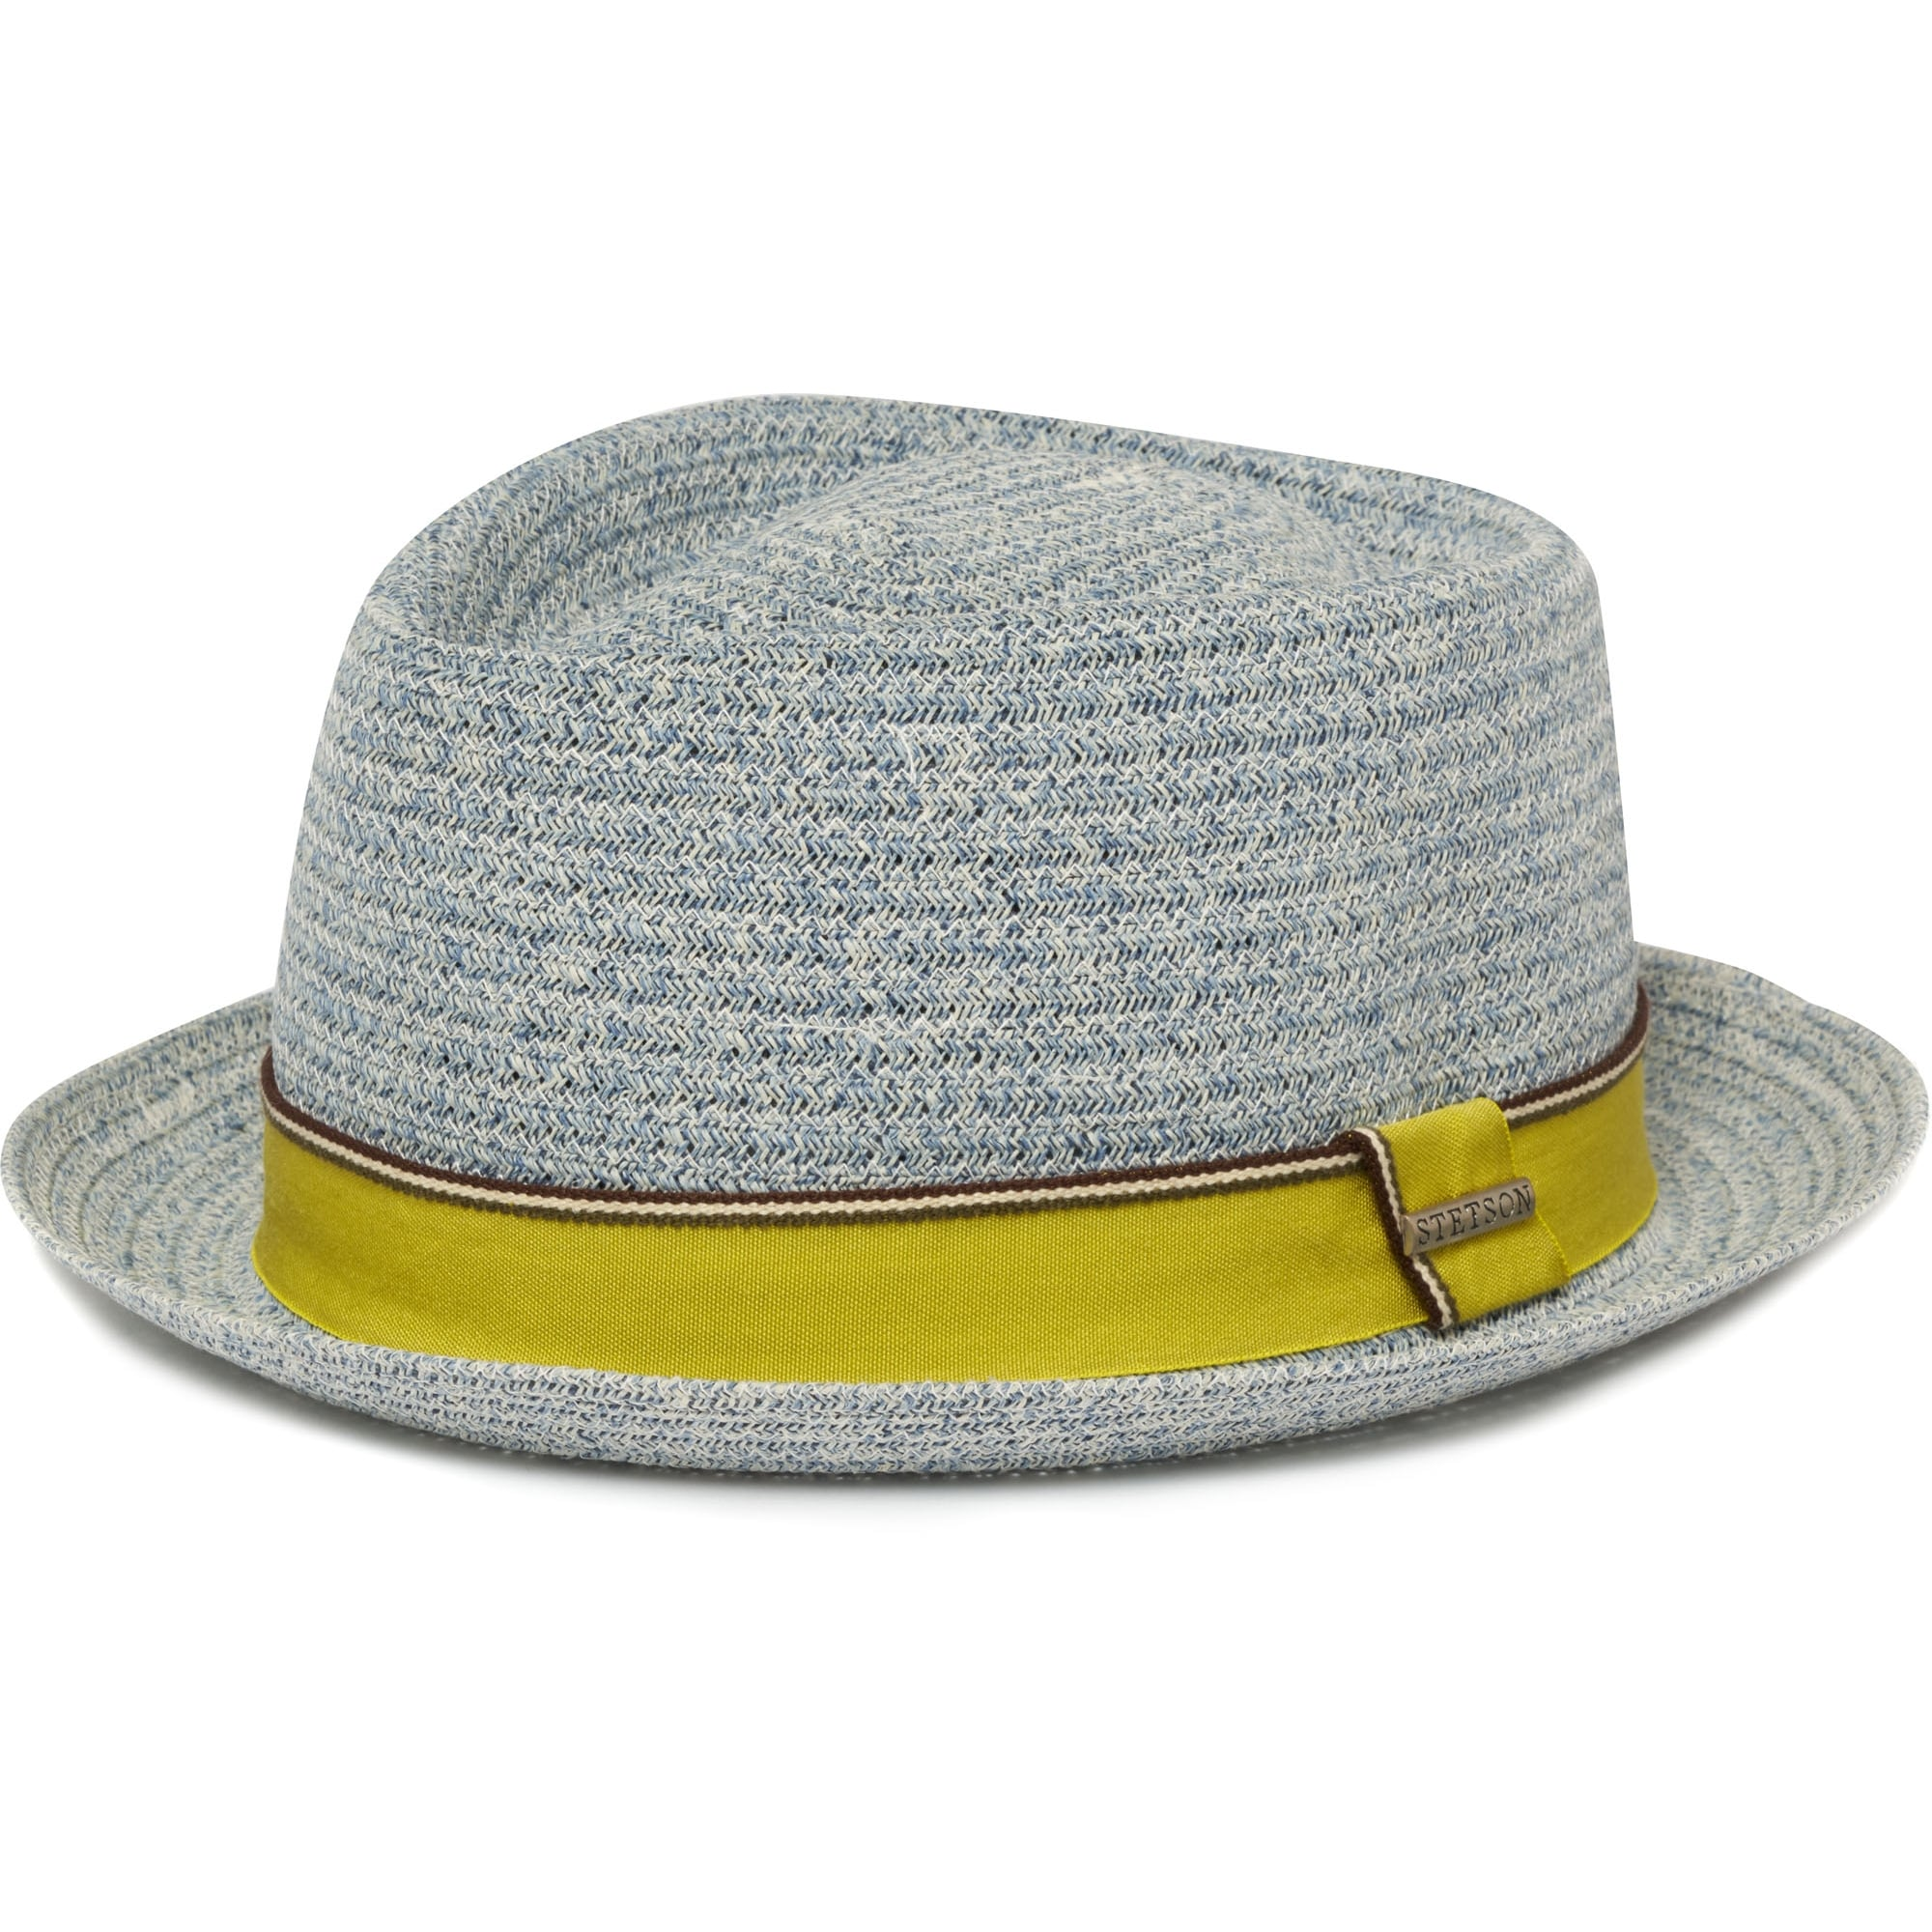 85b7b31f470 Stetson Collano Diamond Player Toyo Straw Hat